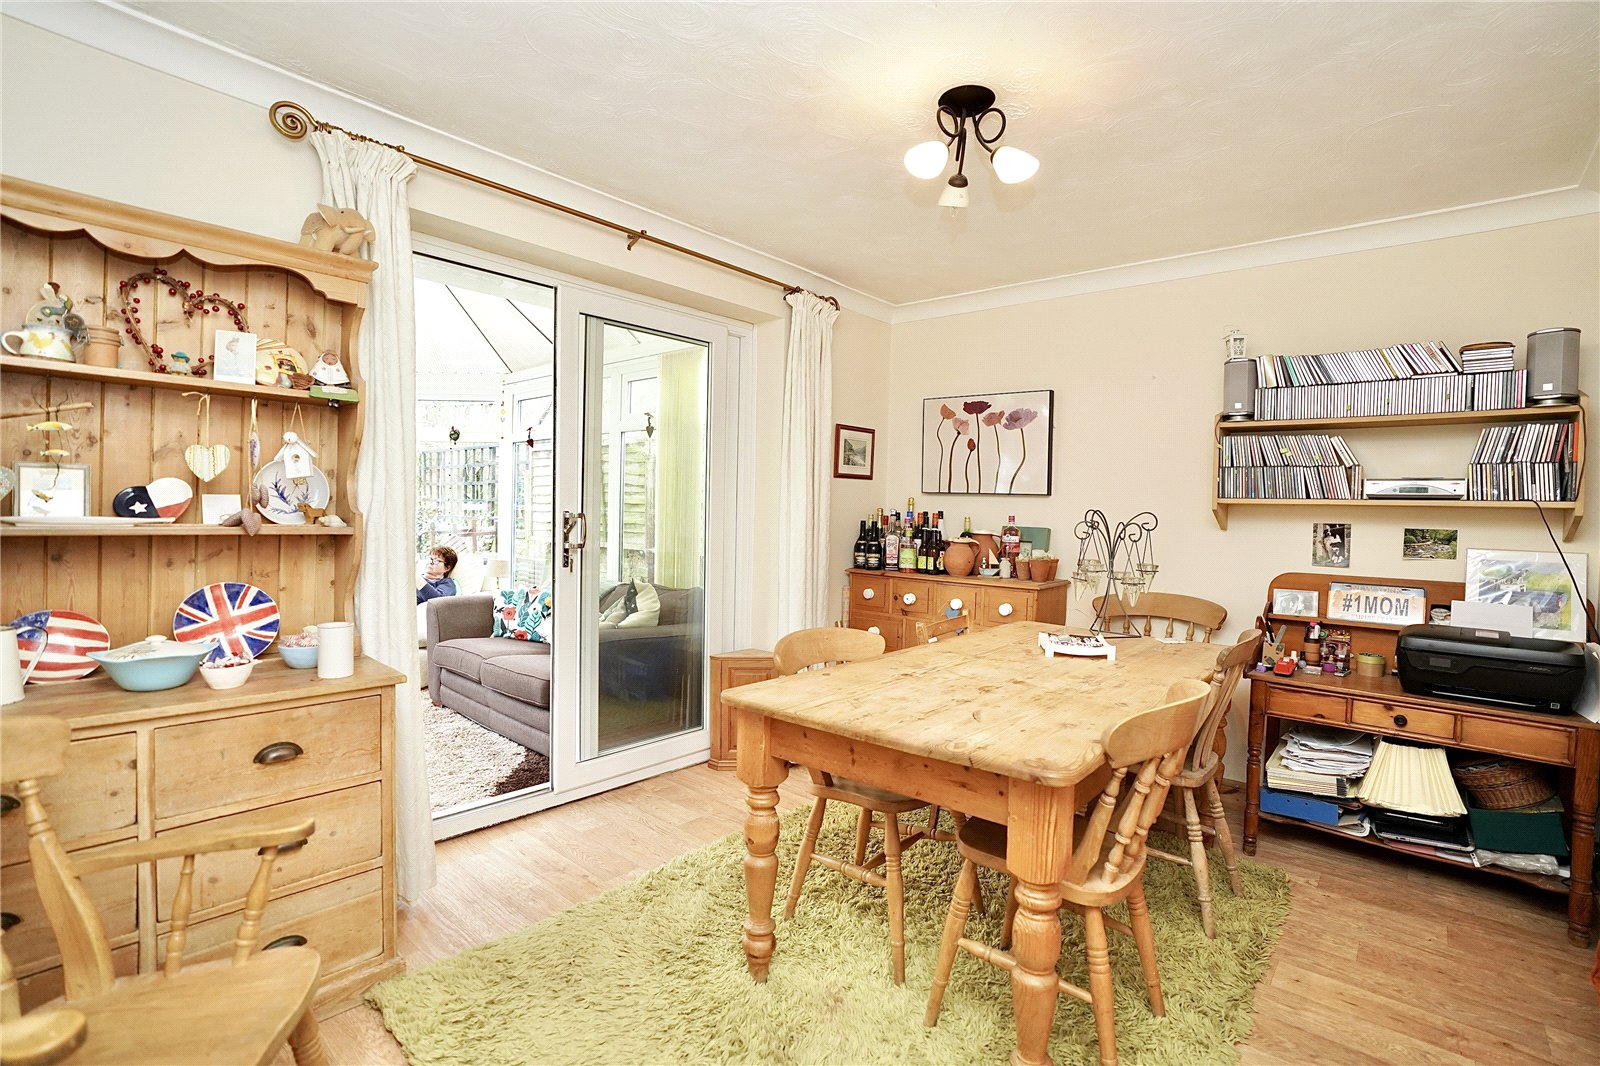 3 bed house for sale in Hemingford Grey, PE28 9BS 5